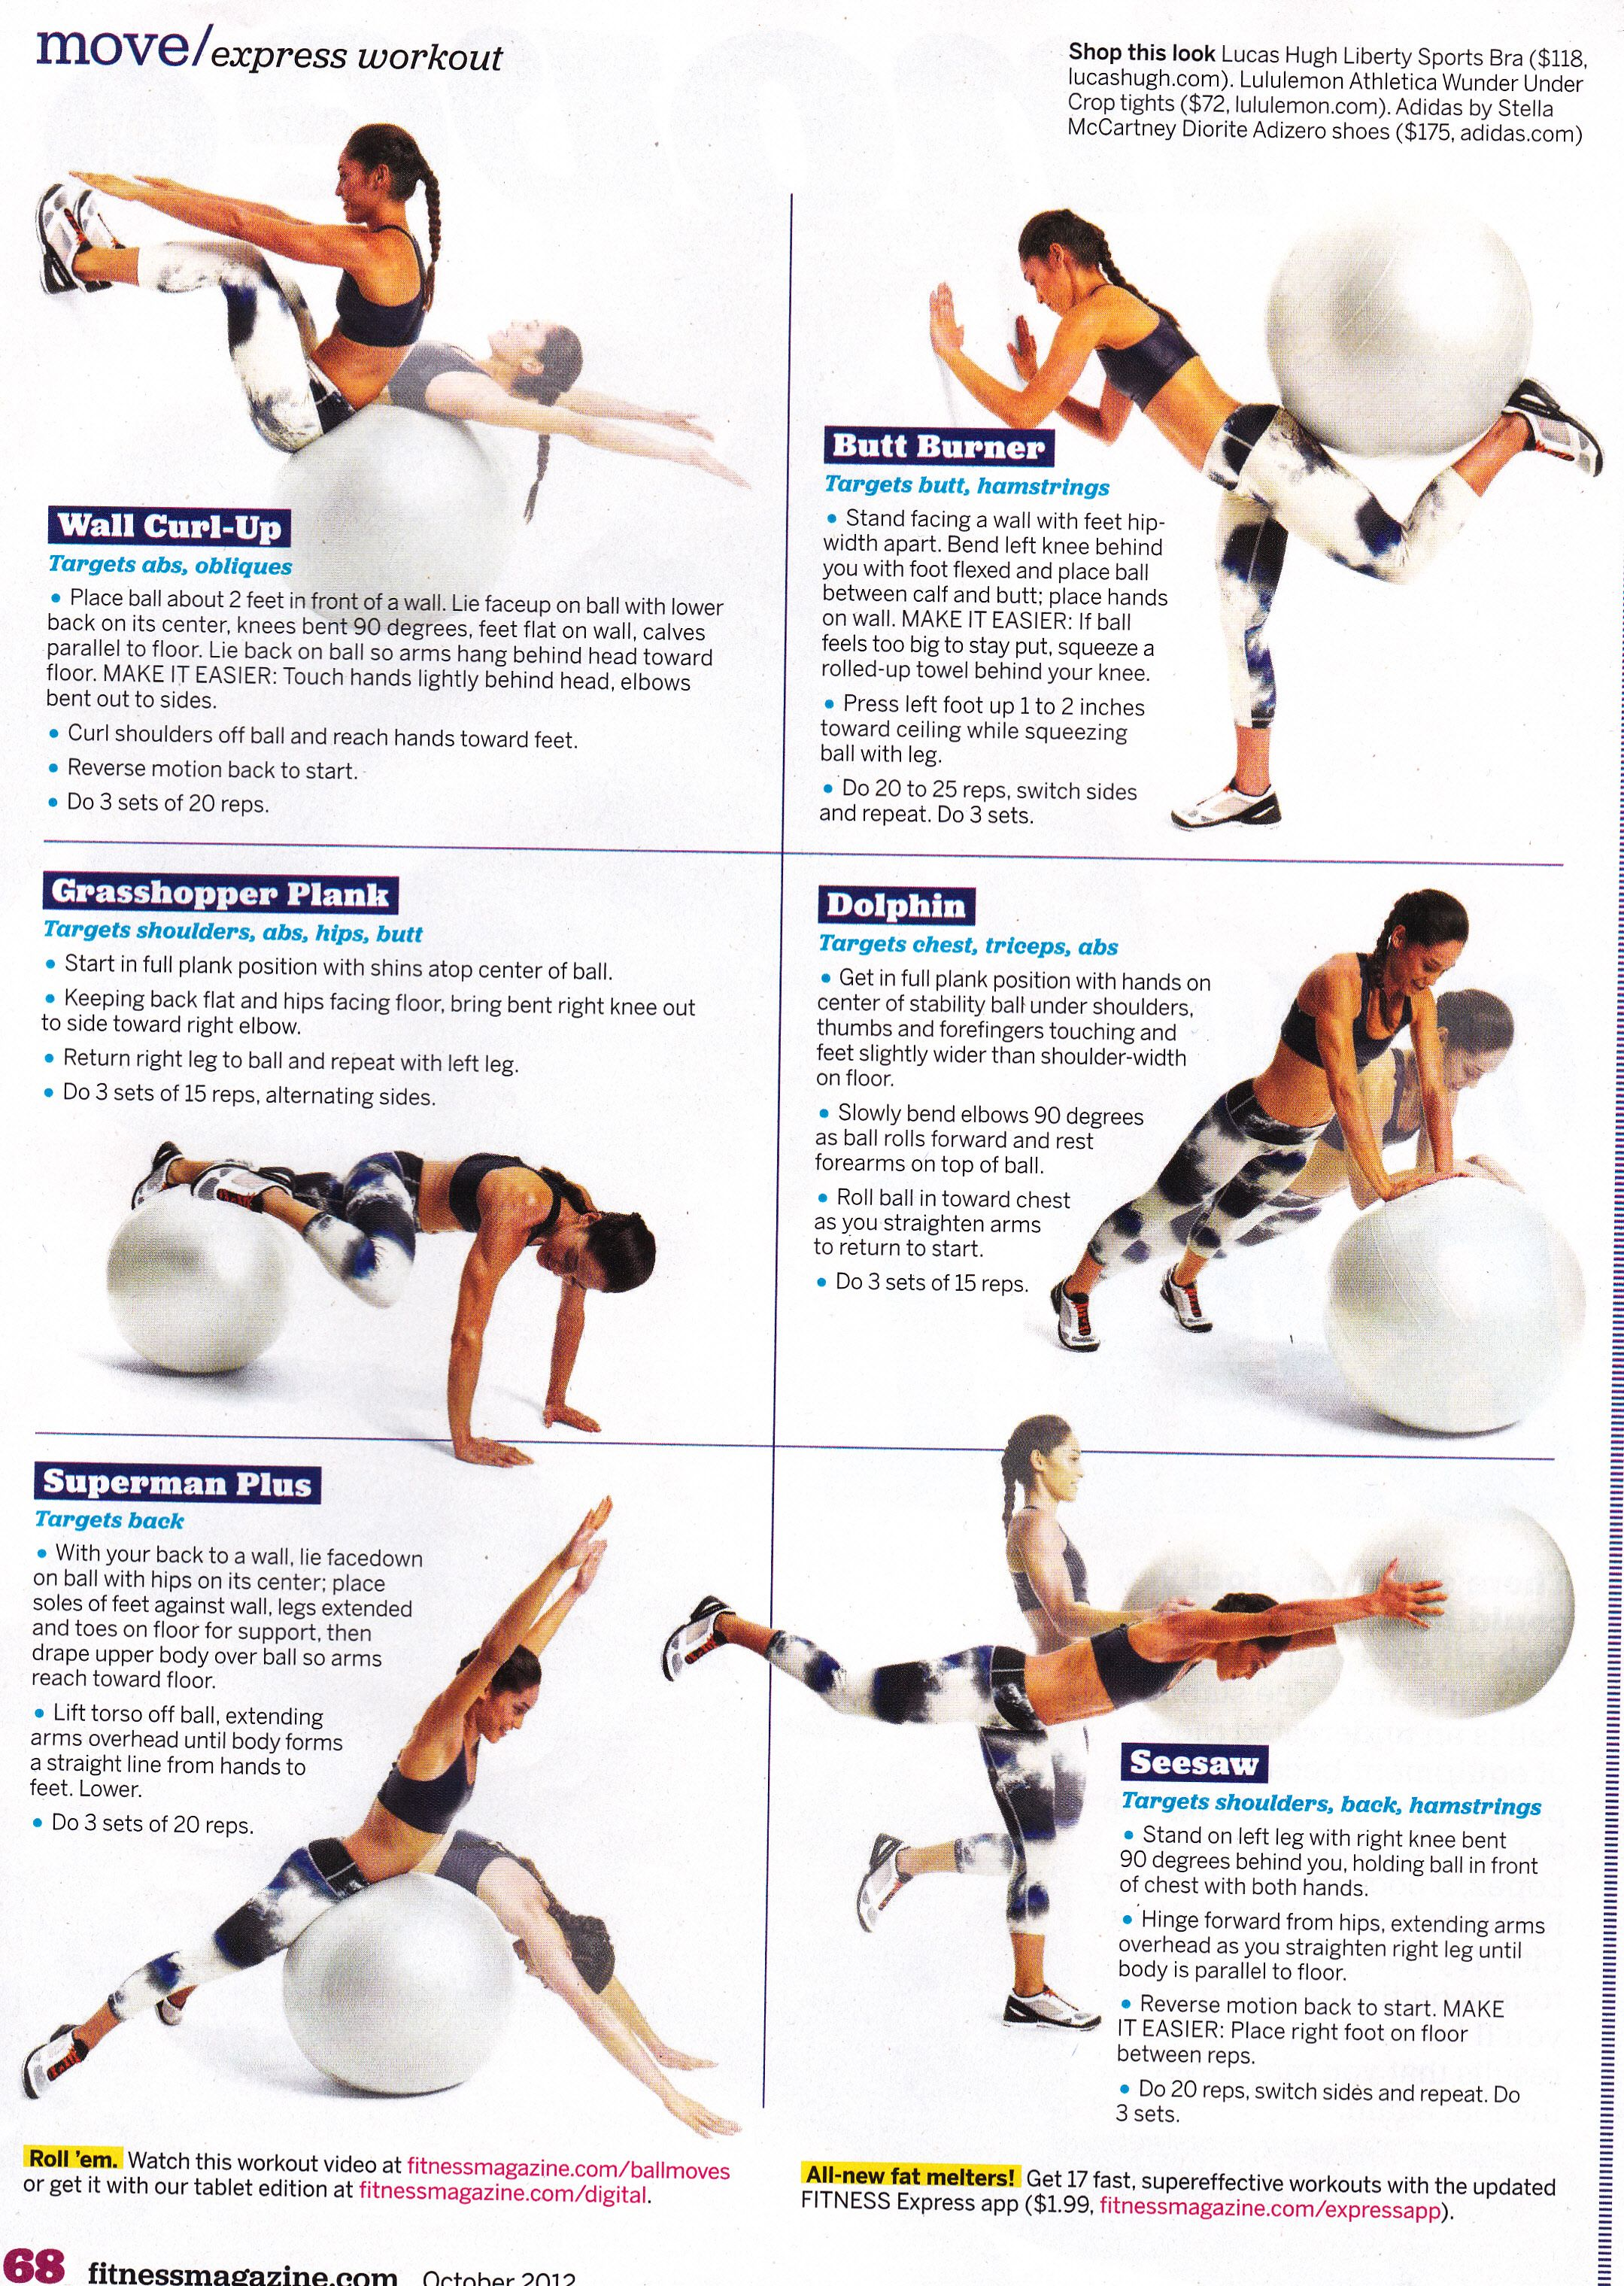 Exercise Ball For Guide Advice On Health And